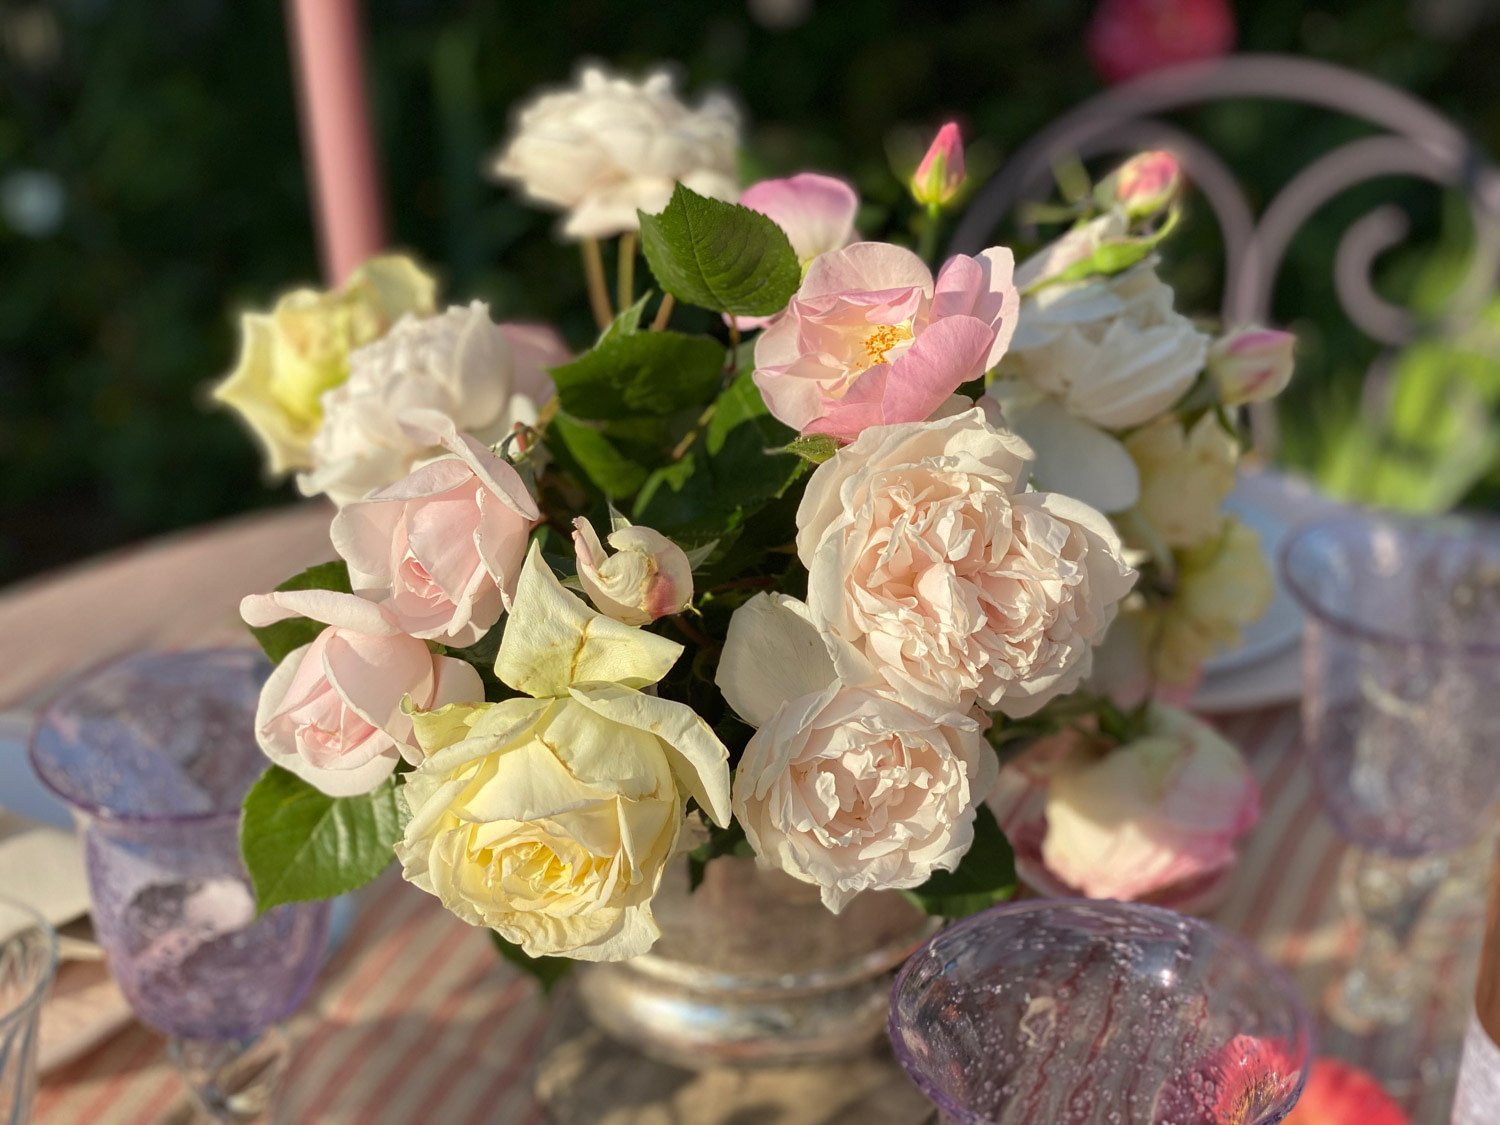 art-de-table-roses-jardin-bouquet-2